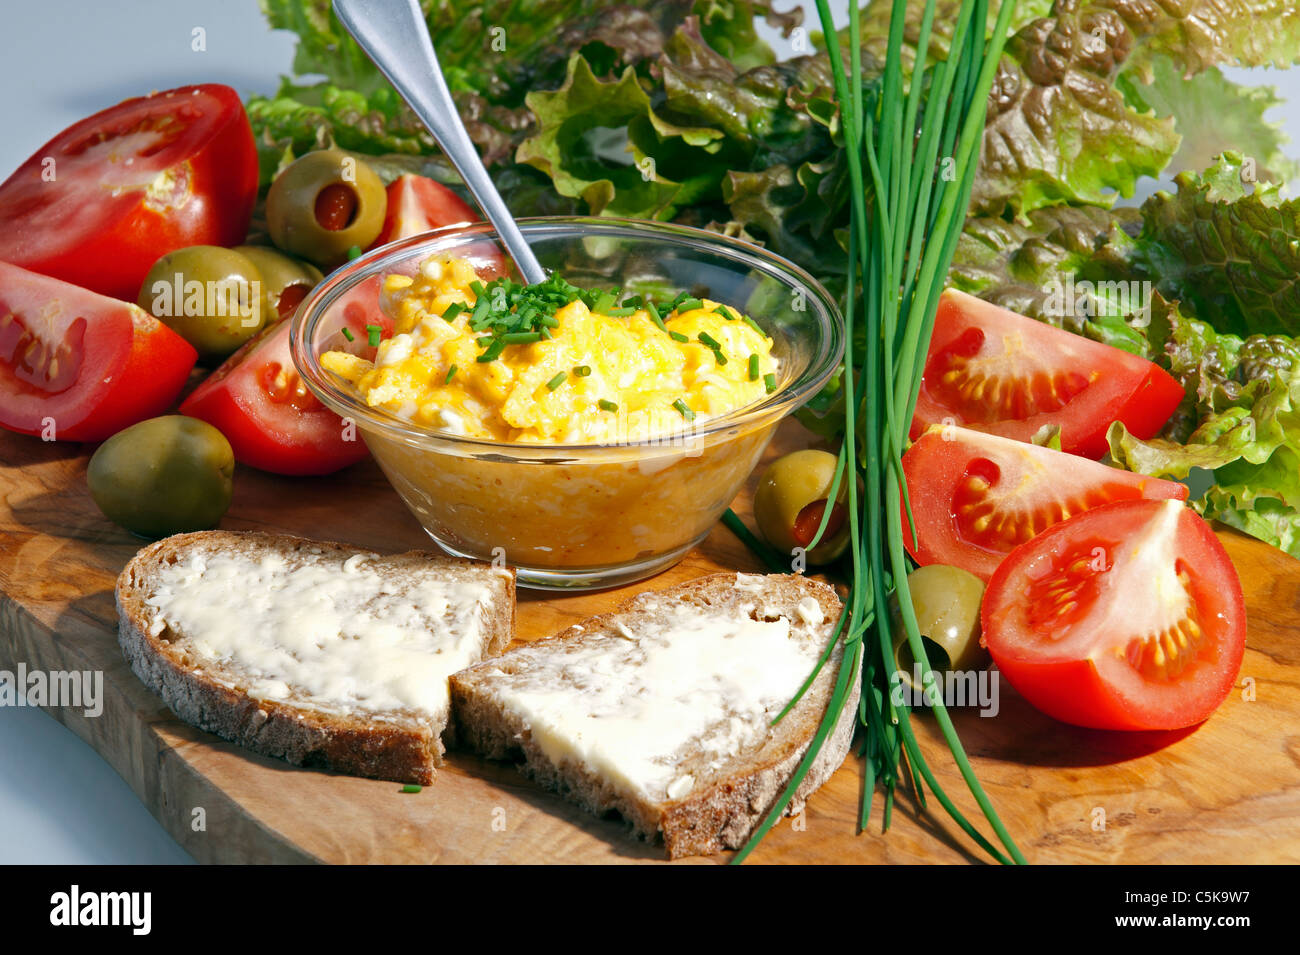 Breakfast plate with eggs and tomatoes - Stock Image